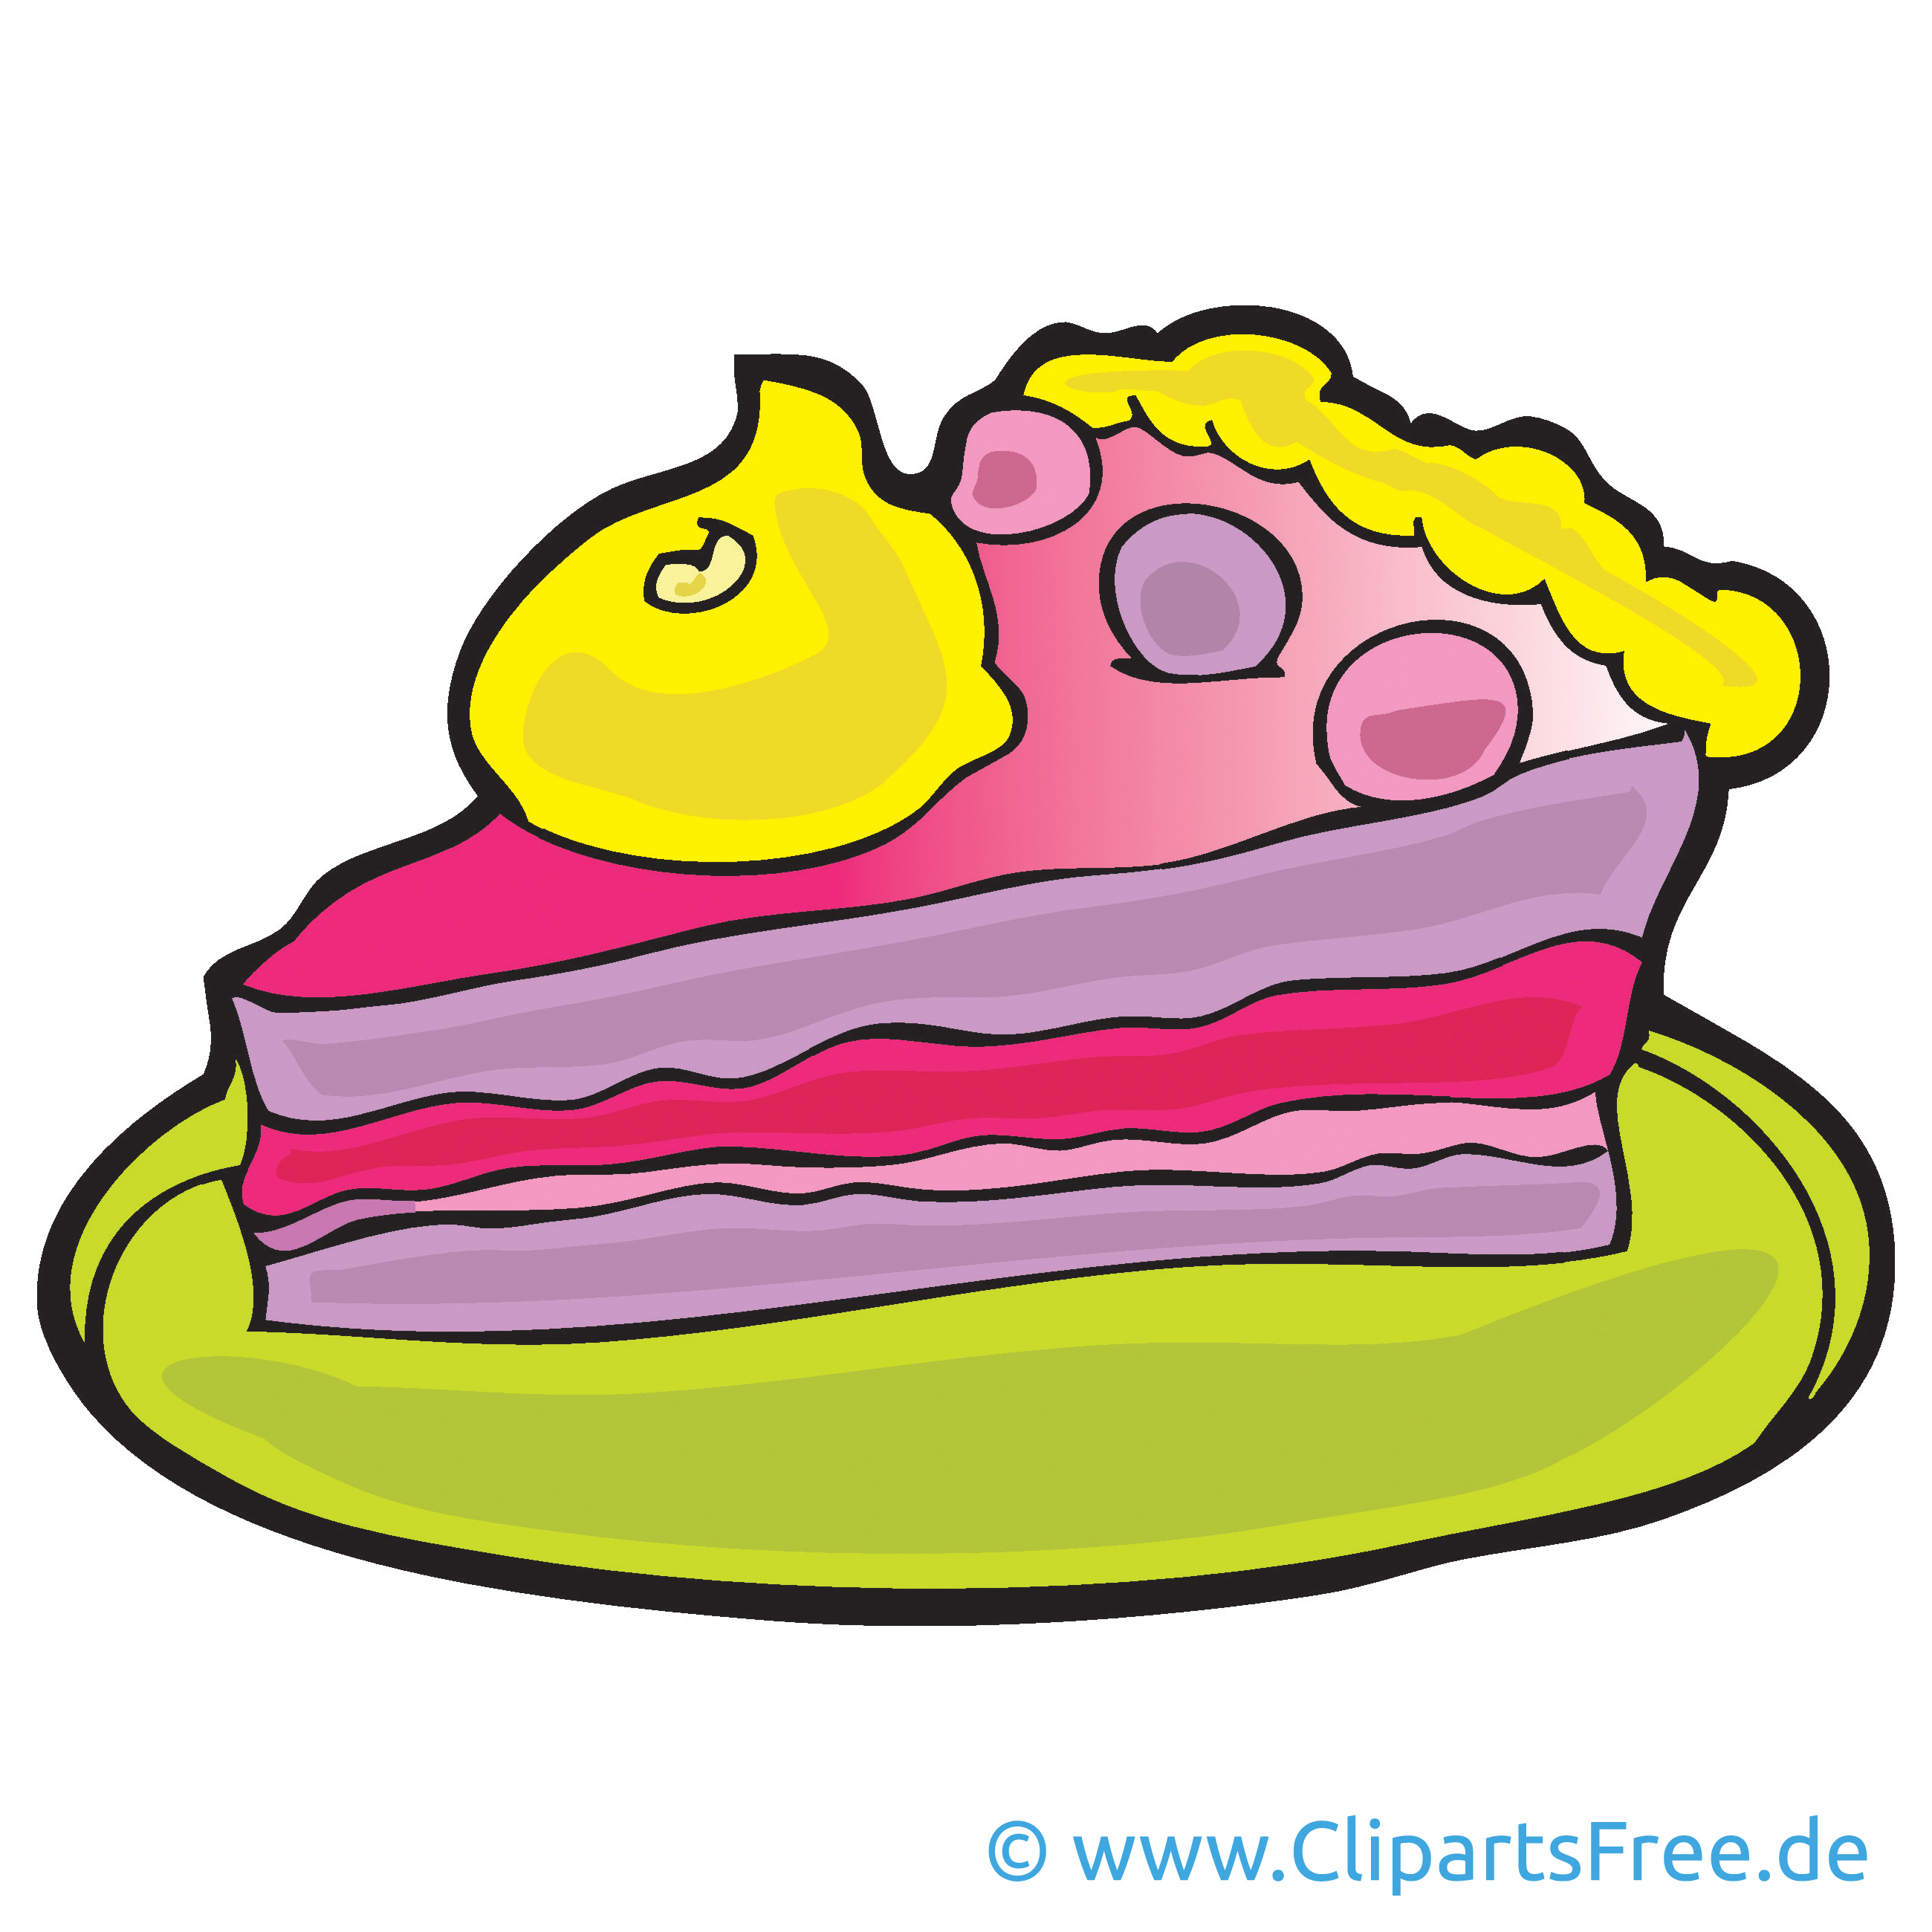 Clipart Kuchen Und Torten Torte Bild Cartoon Clipart Grafik Illustration